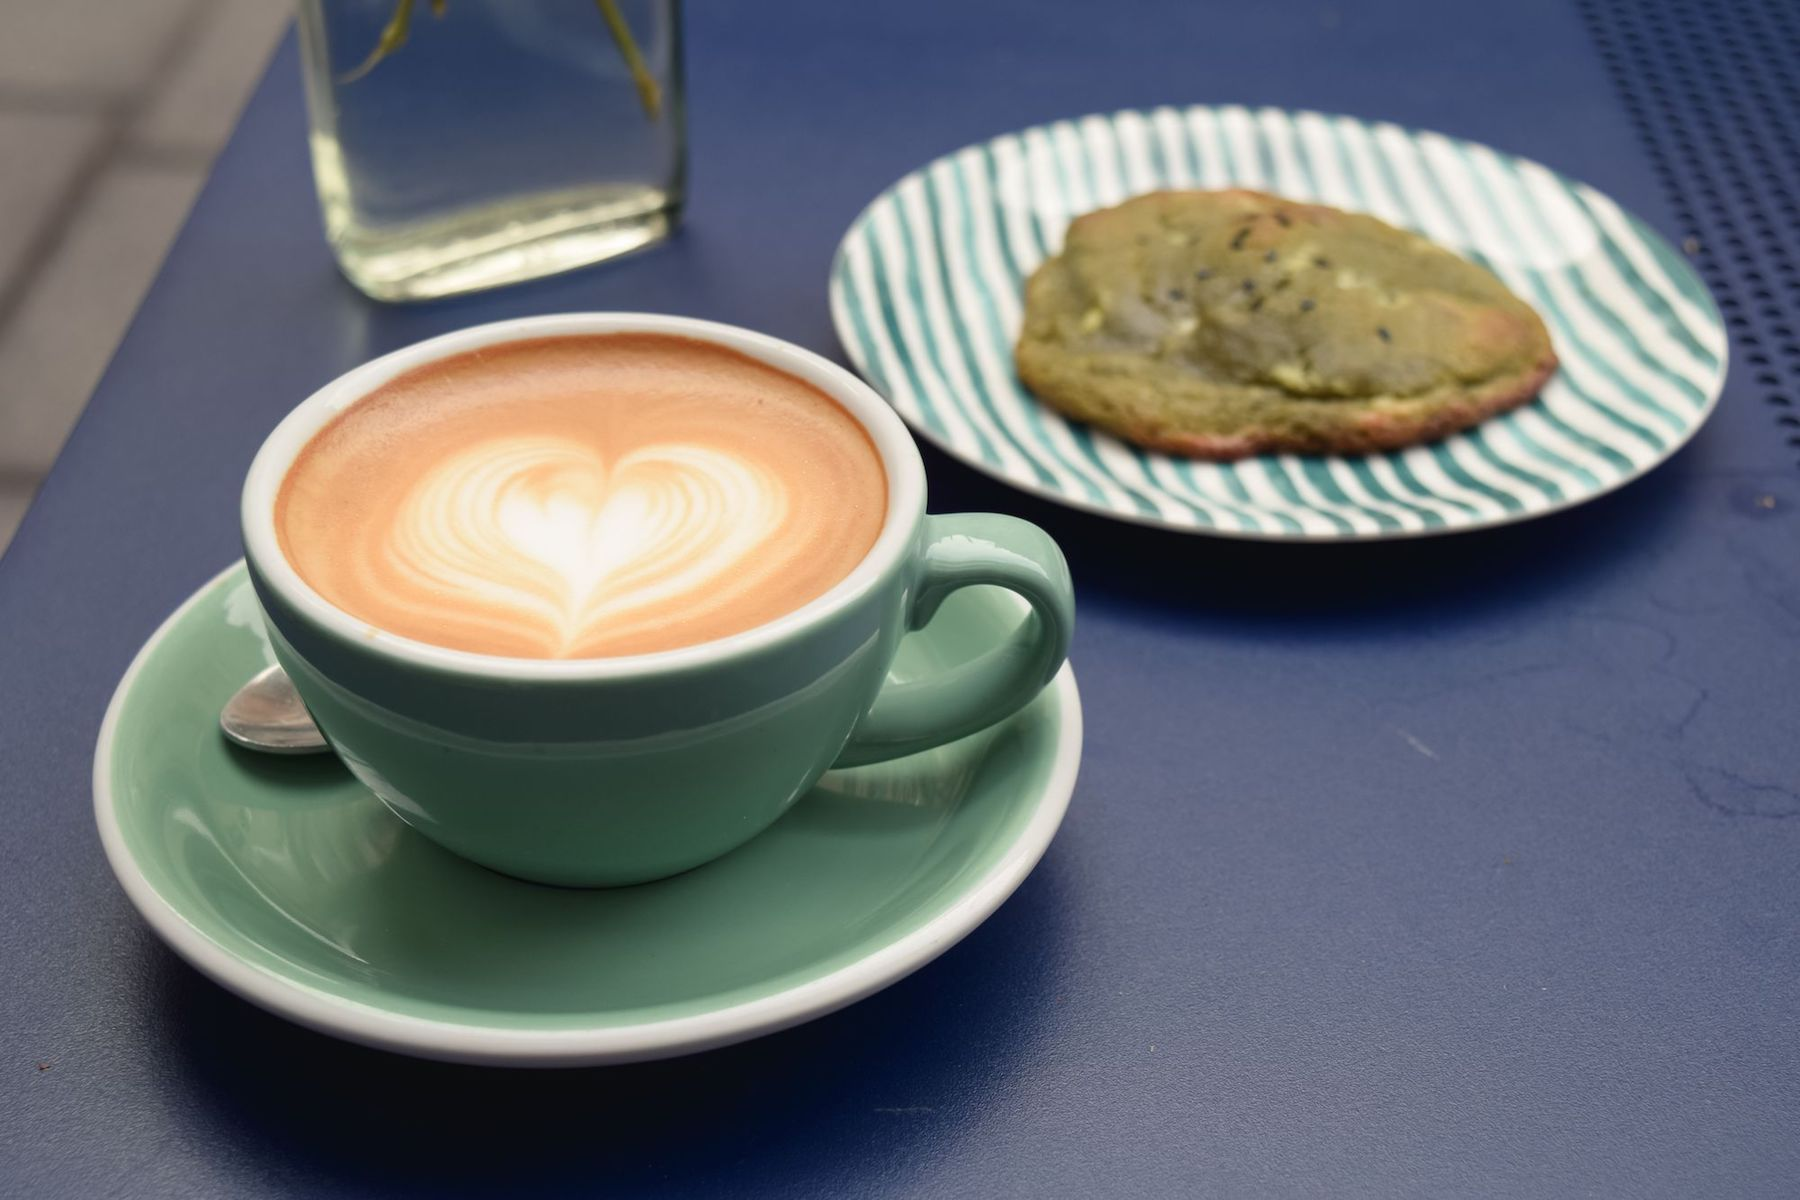 Specialty Coffee and Matcha White Chocolate Cookie at 5 Pailles Coffee, Paris